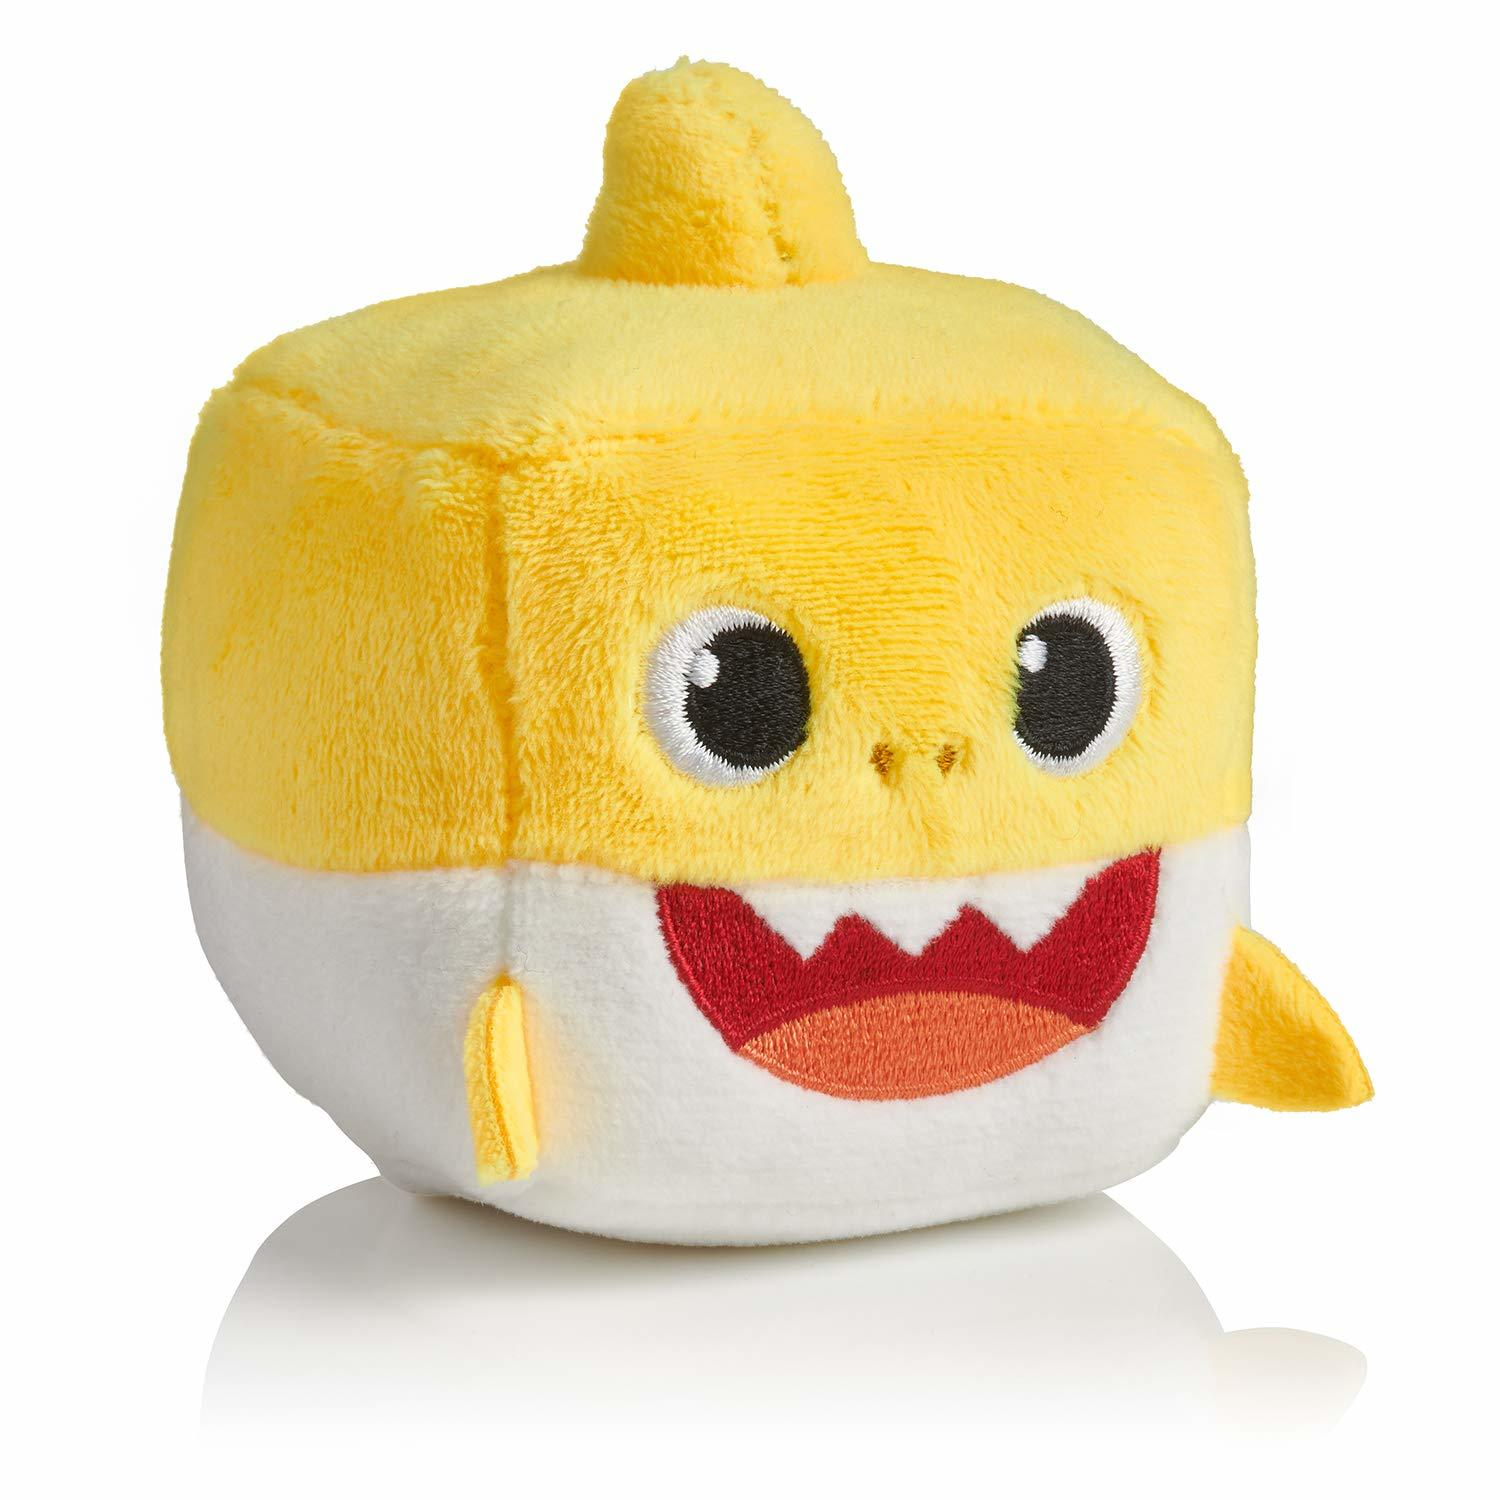 "Baby Shark: 3"" Sound Cube Plush - Baby Shark image"